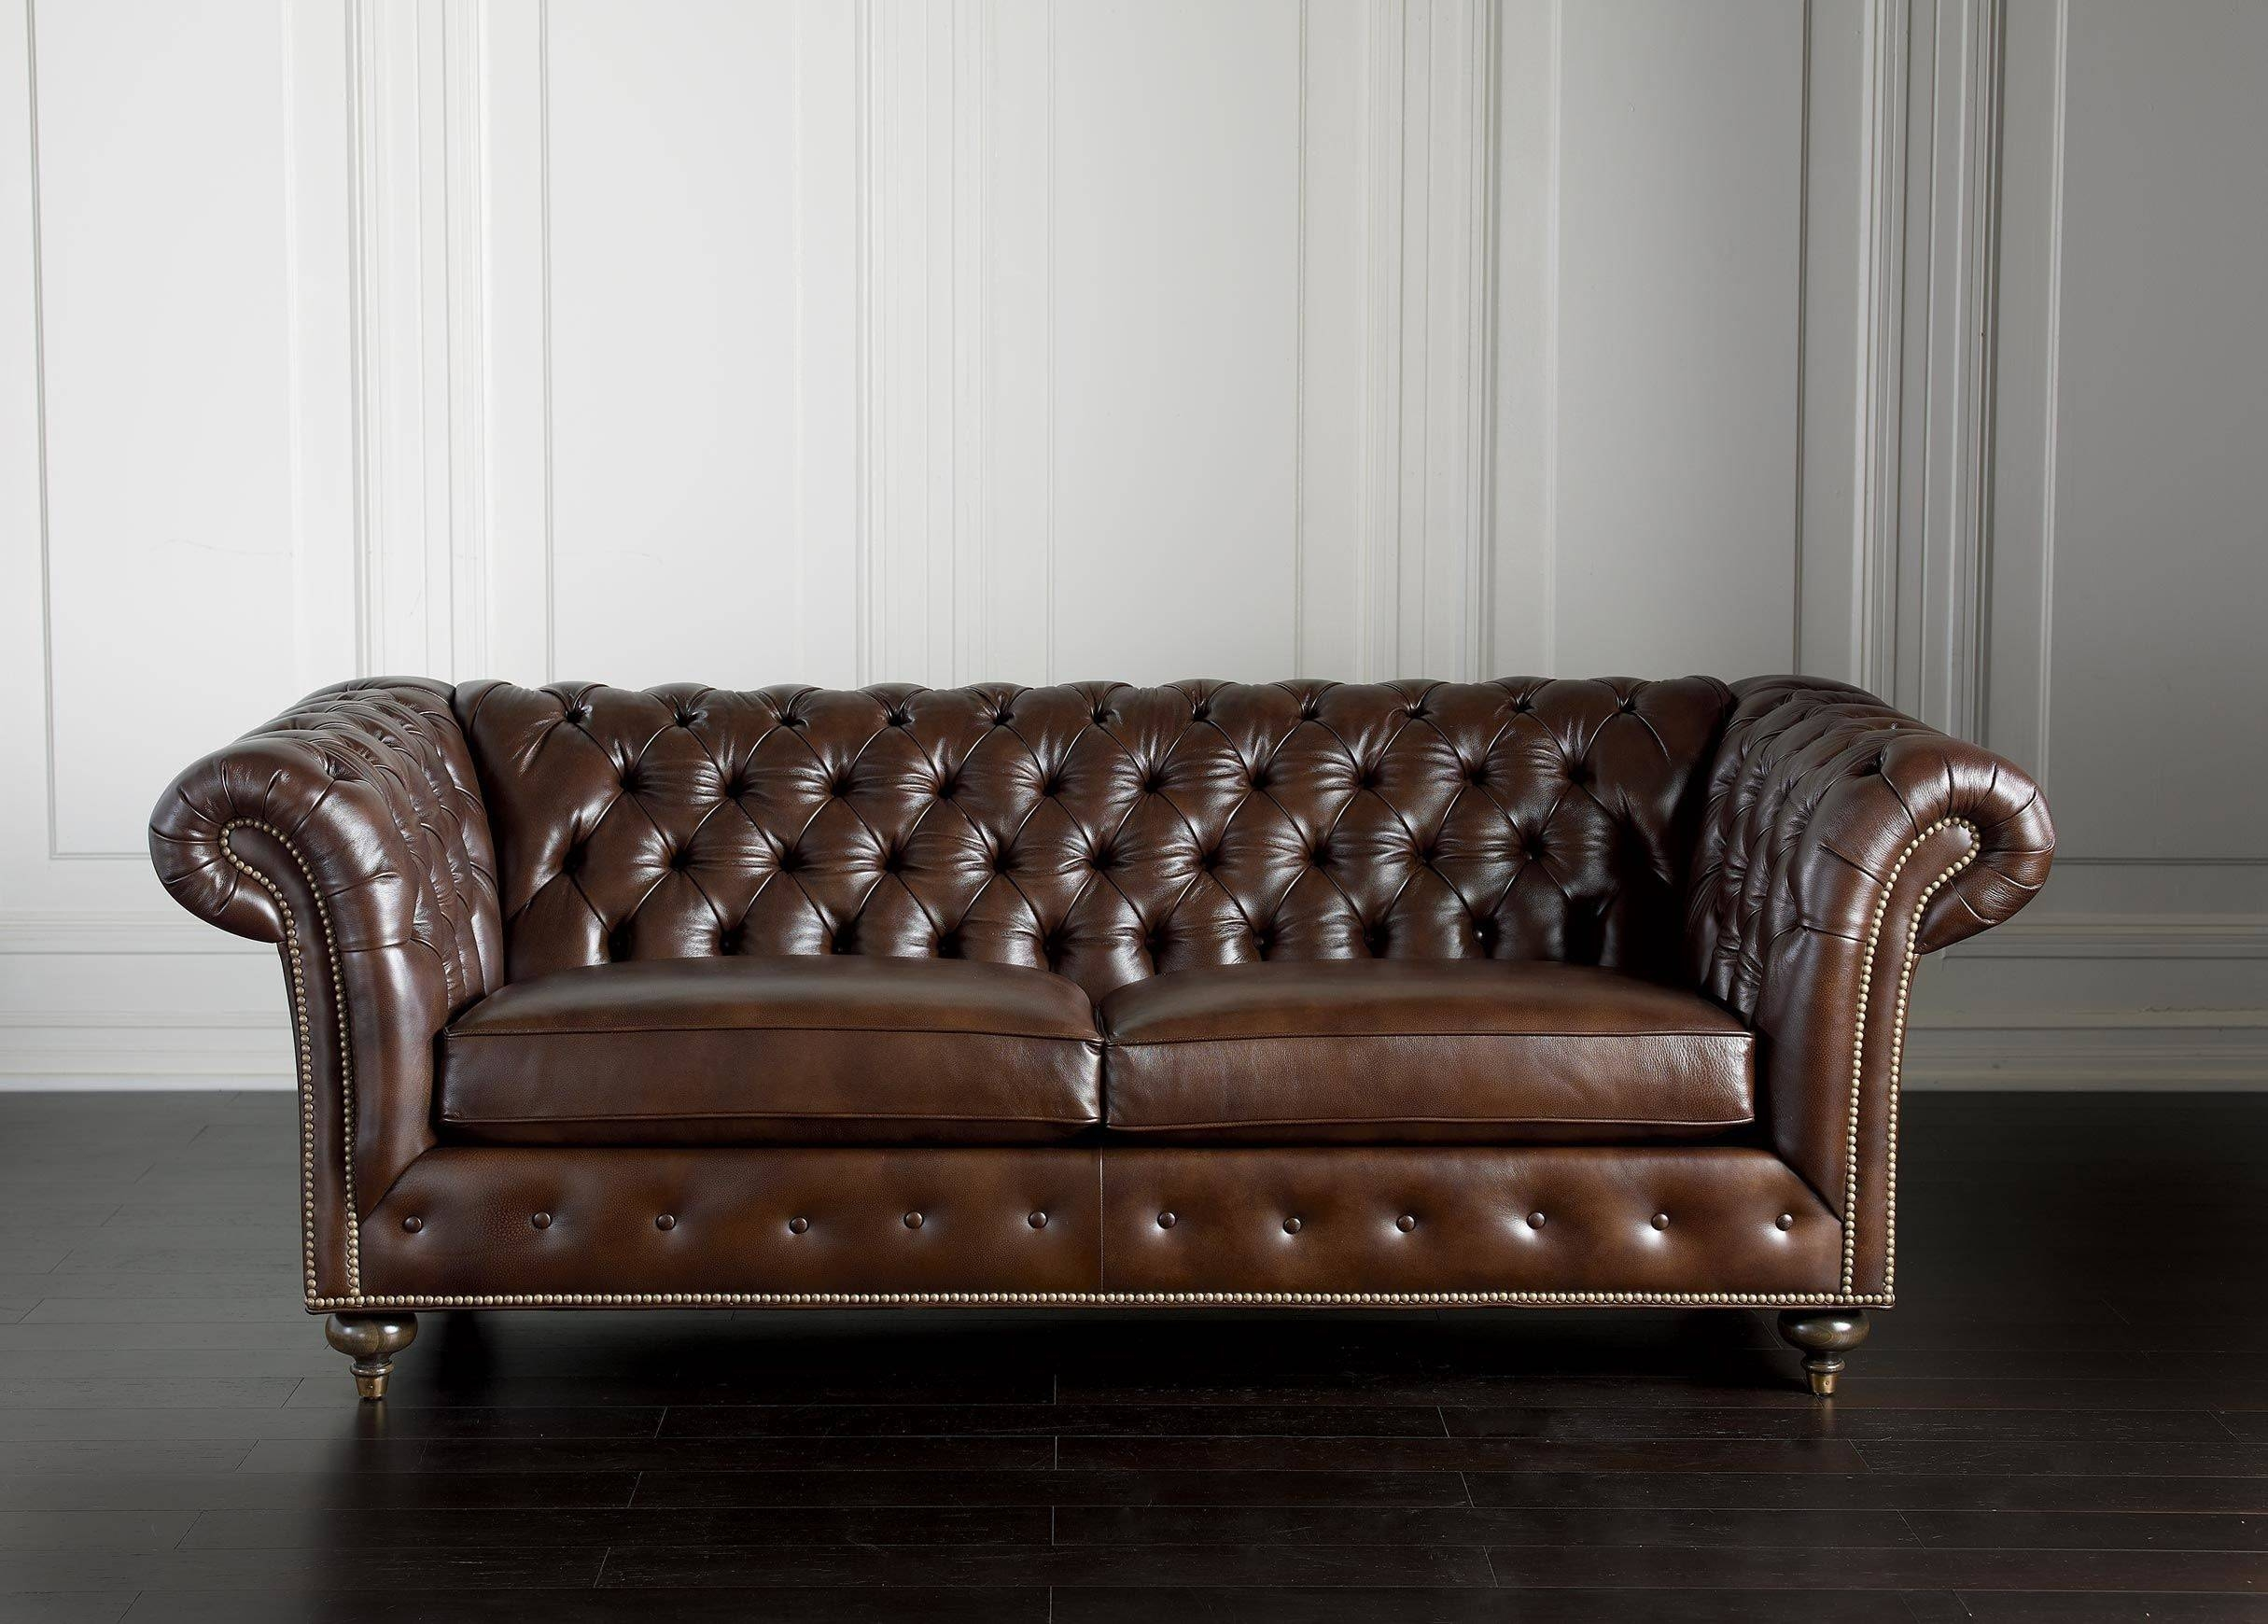 Sofas: Ethan Allen Sofa Bed | Ethan Allen Hudson Sofa | Ethan with regard to Ethan Allen Whitney Sofas (Image 9 of 15)